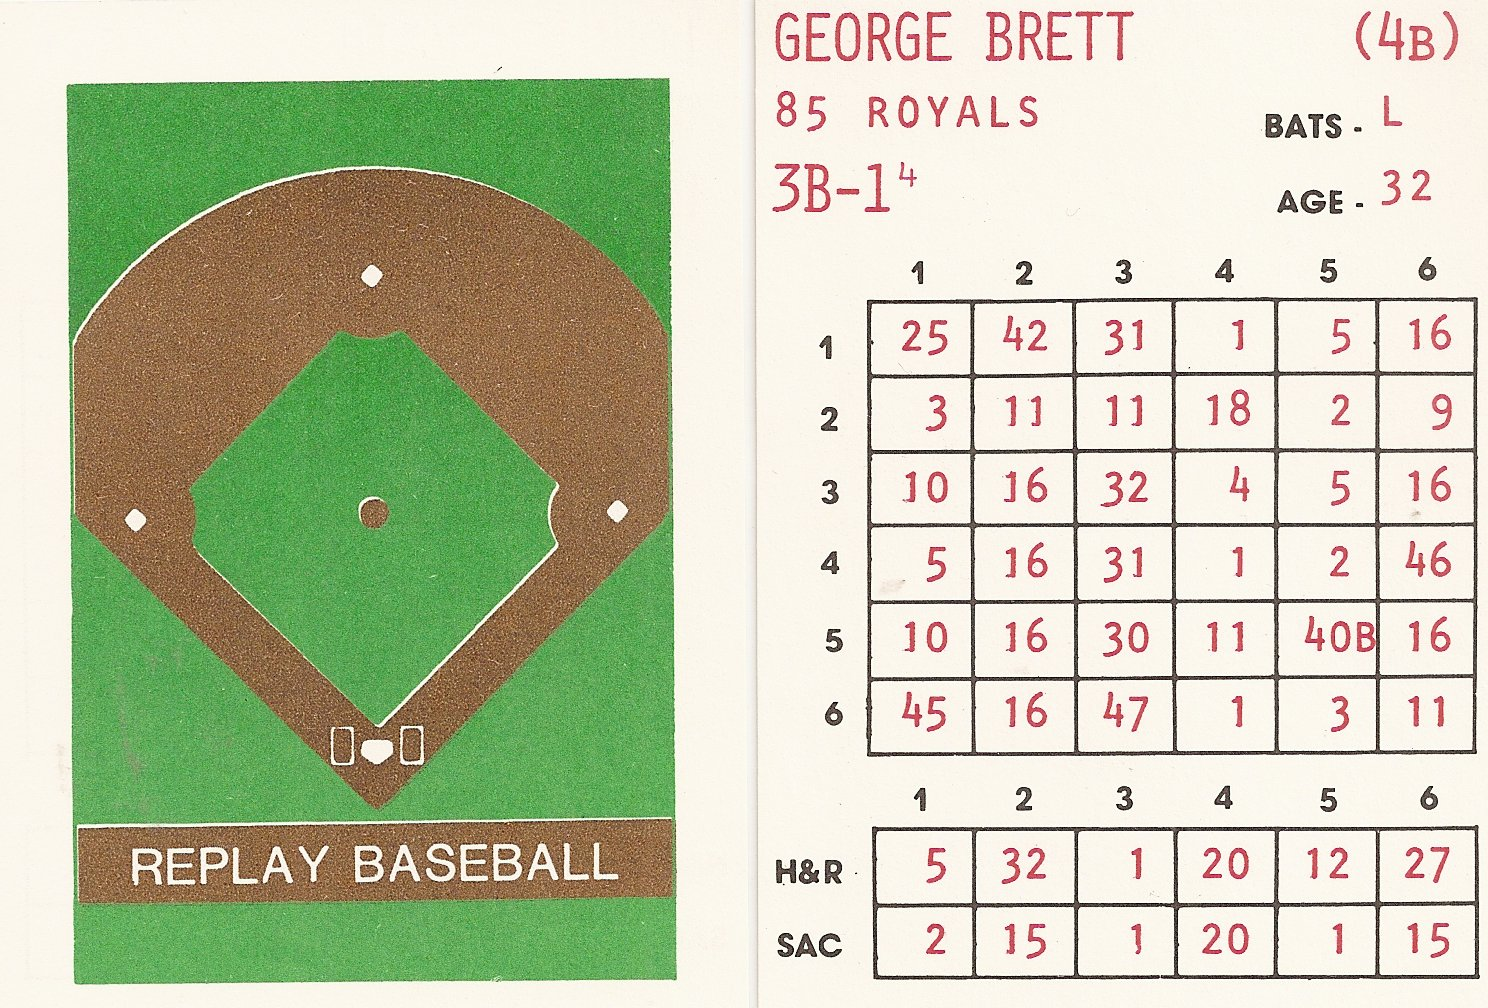 1985 Replay Game Cards